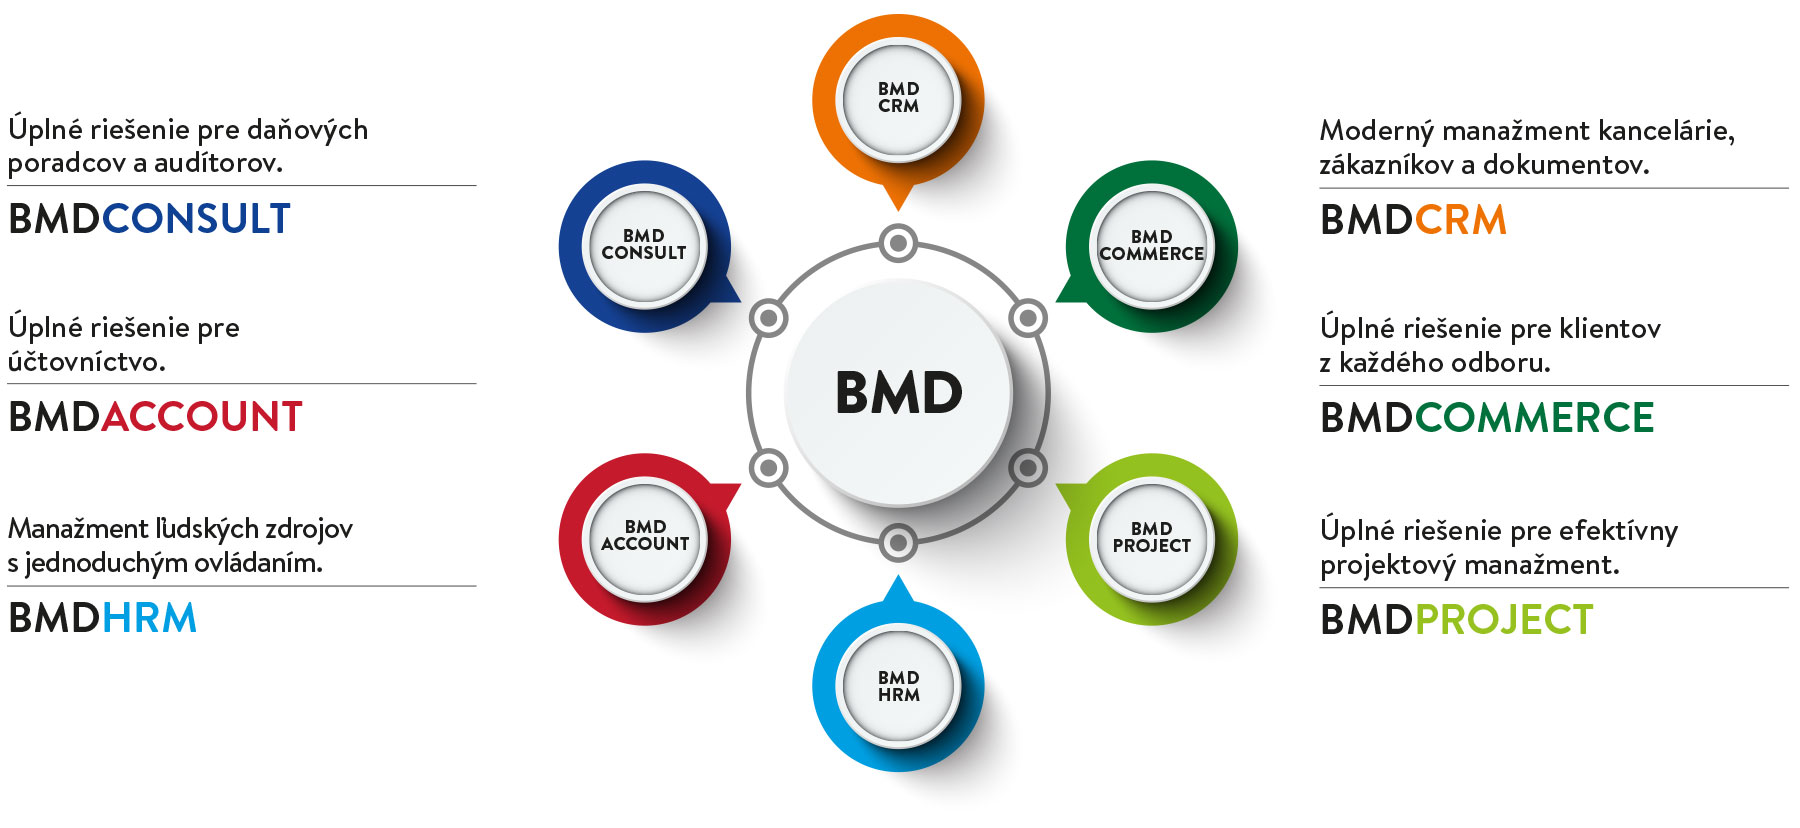 BMD Consult, BMD Account, BMD HRM, BMD CRM, BMD Commerce, BMD Project